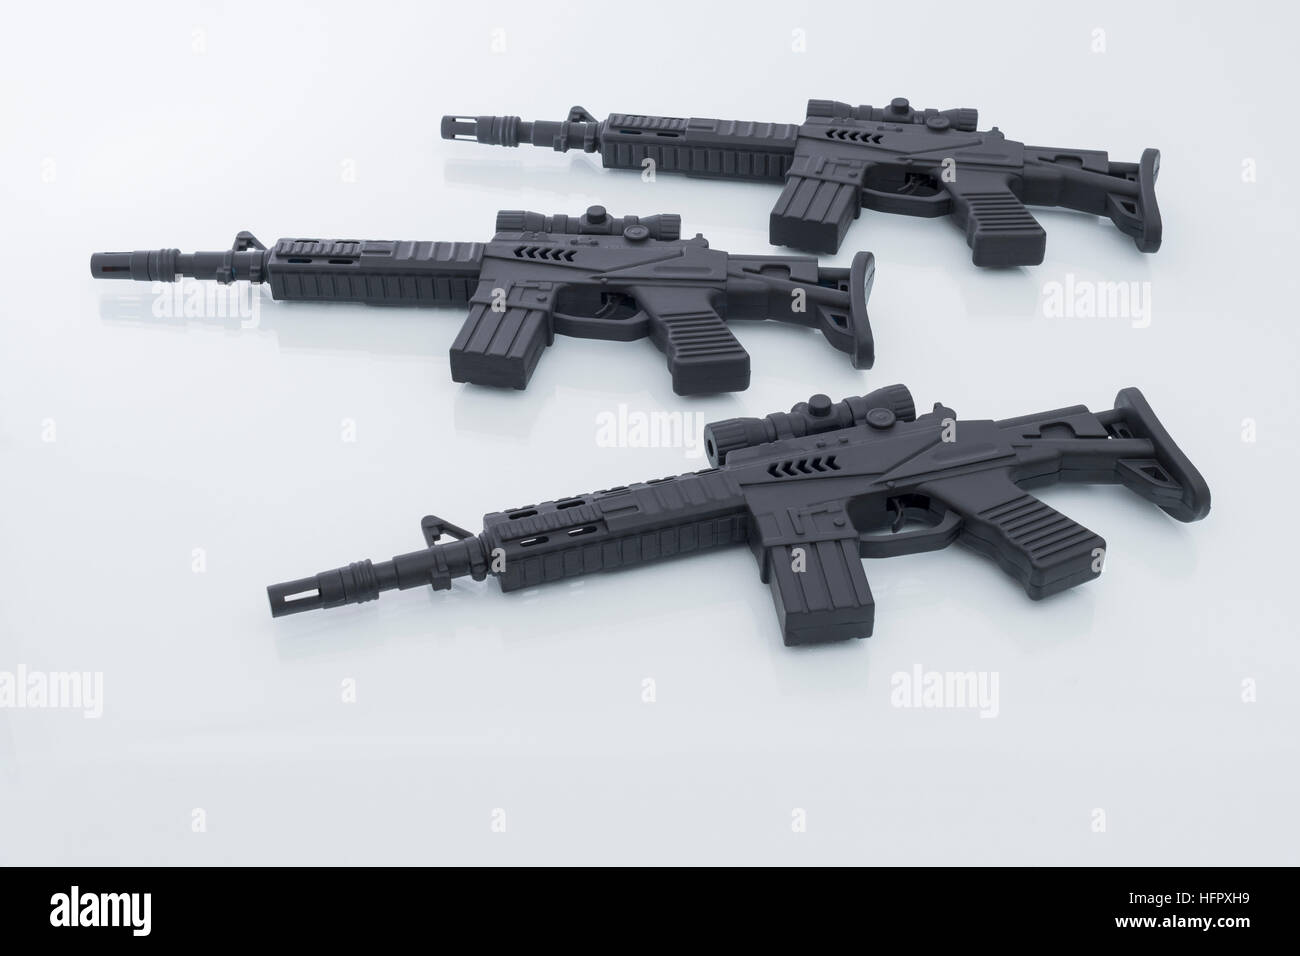 Black toy assault rifles - as visual metaphor for concept of gun violence, gun crime, US gun laws, drugs crime and - Stock Image